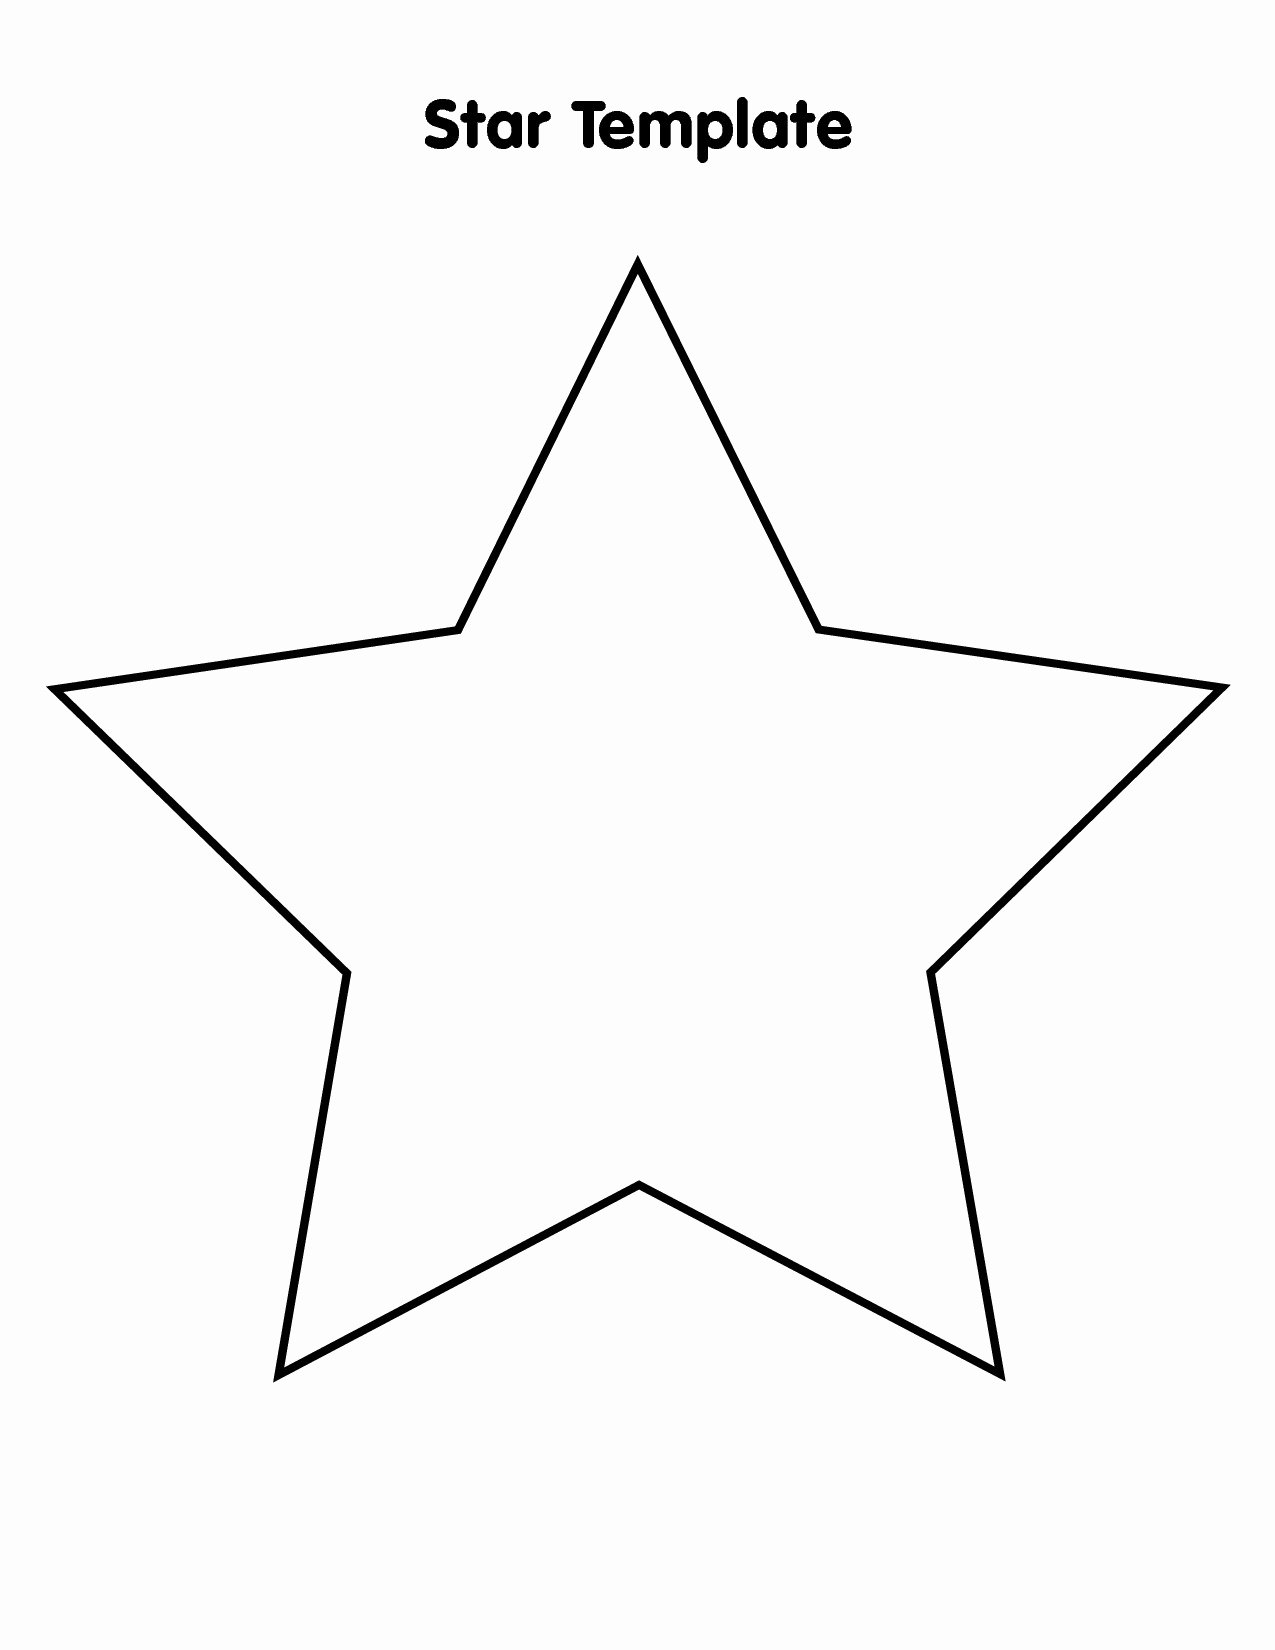 3 Inch Star Template Fresh Star Template Printable Cliparts